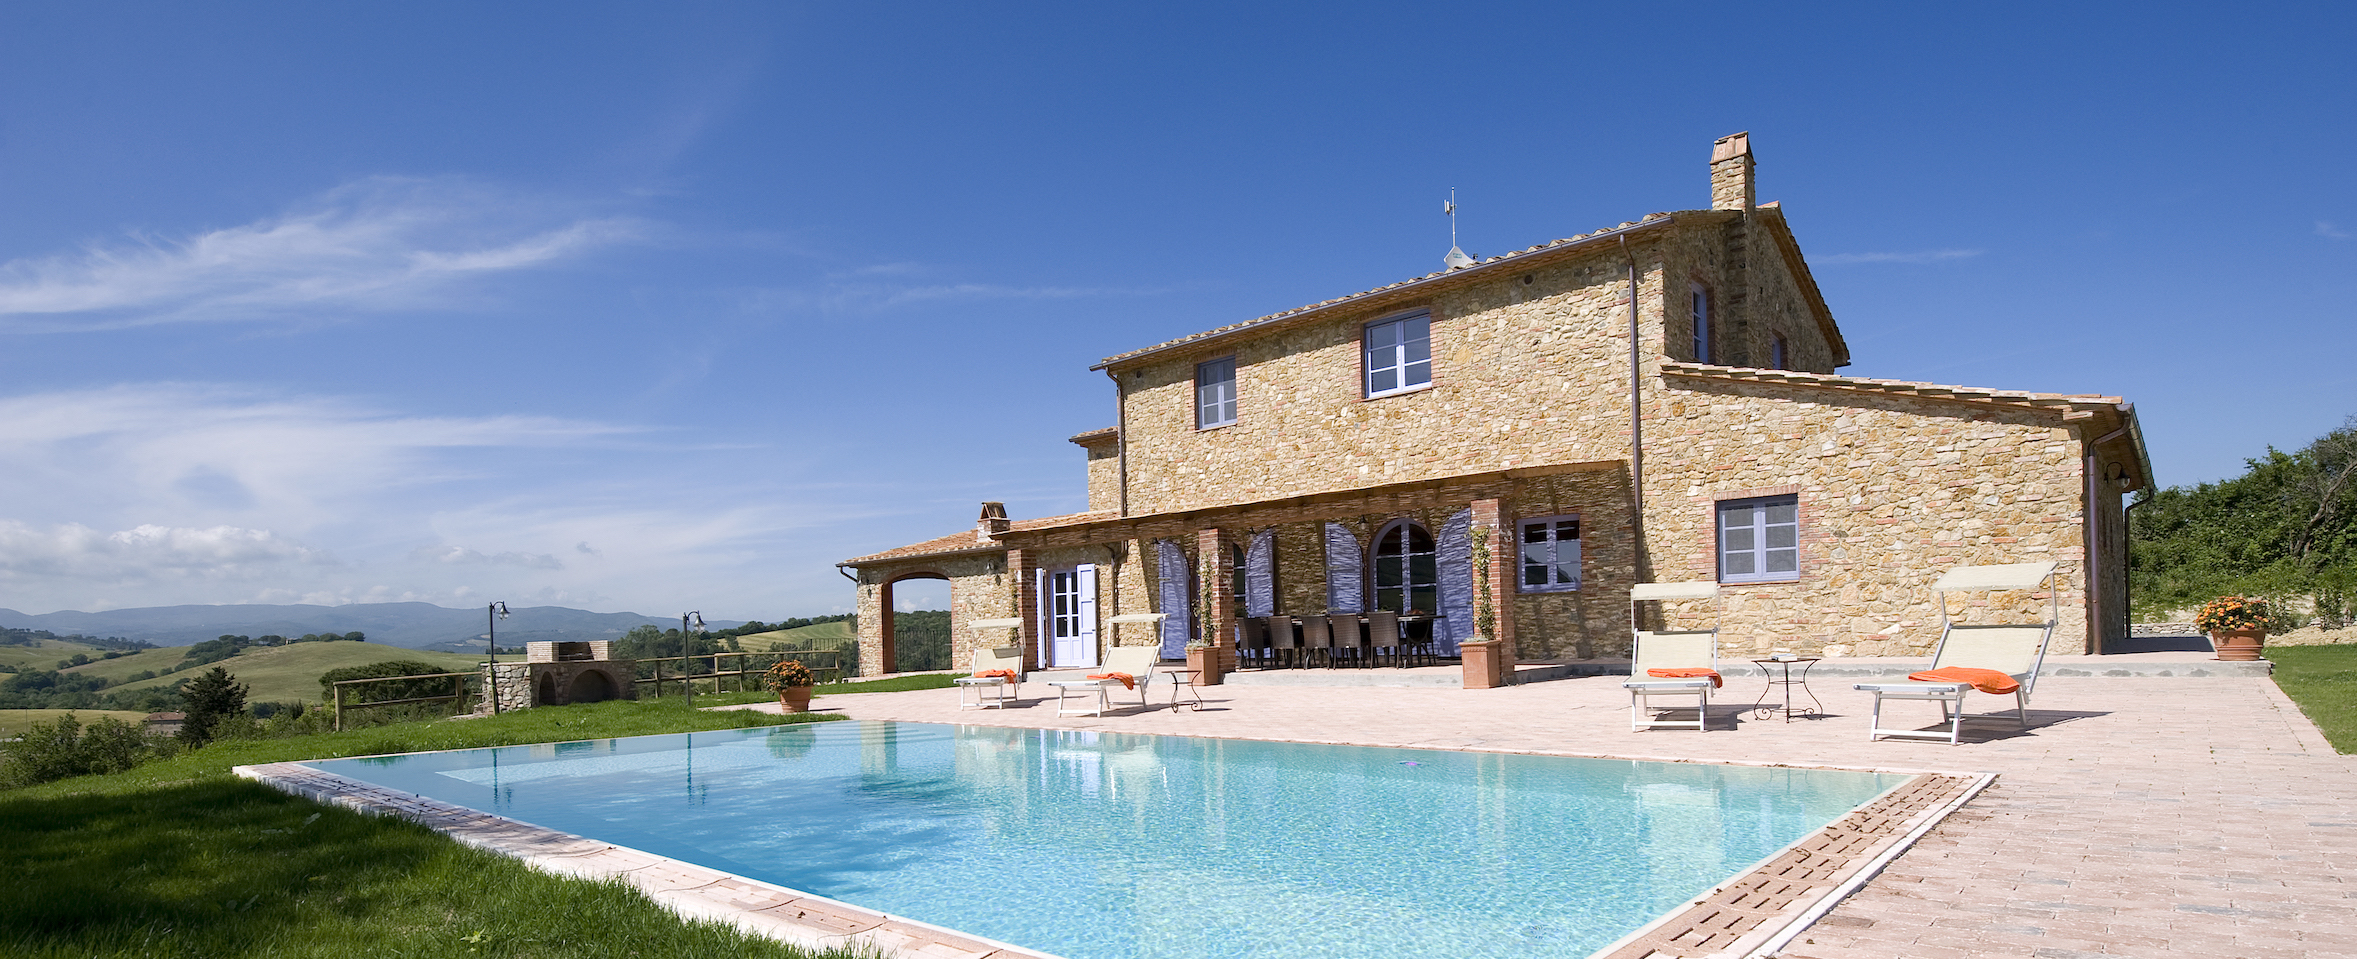 Your private villa in Tuscany with swimming pool